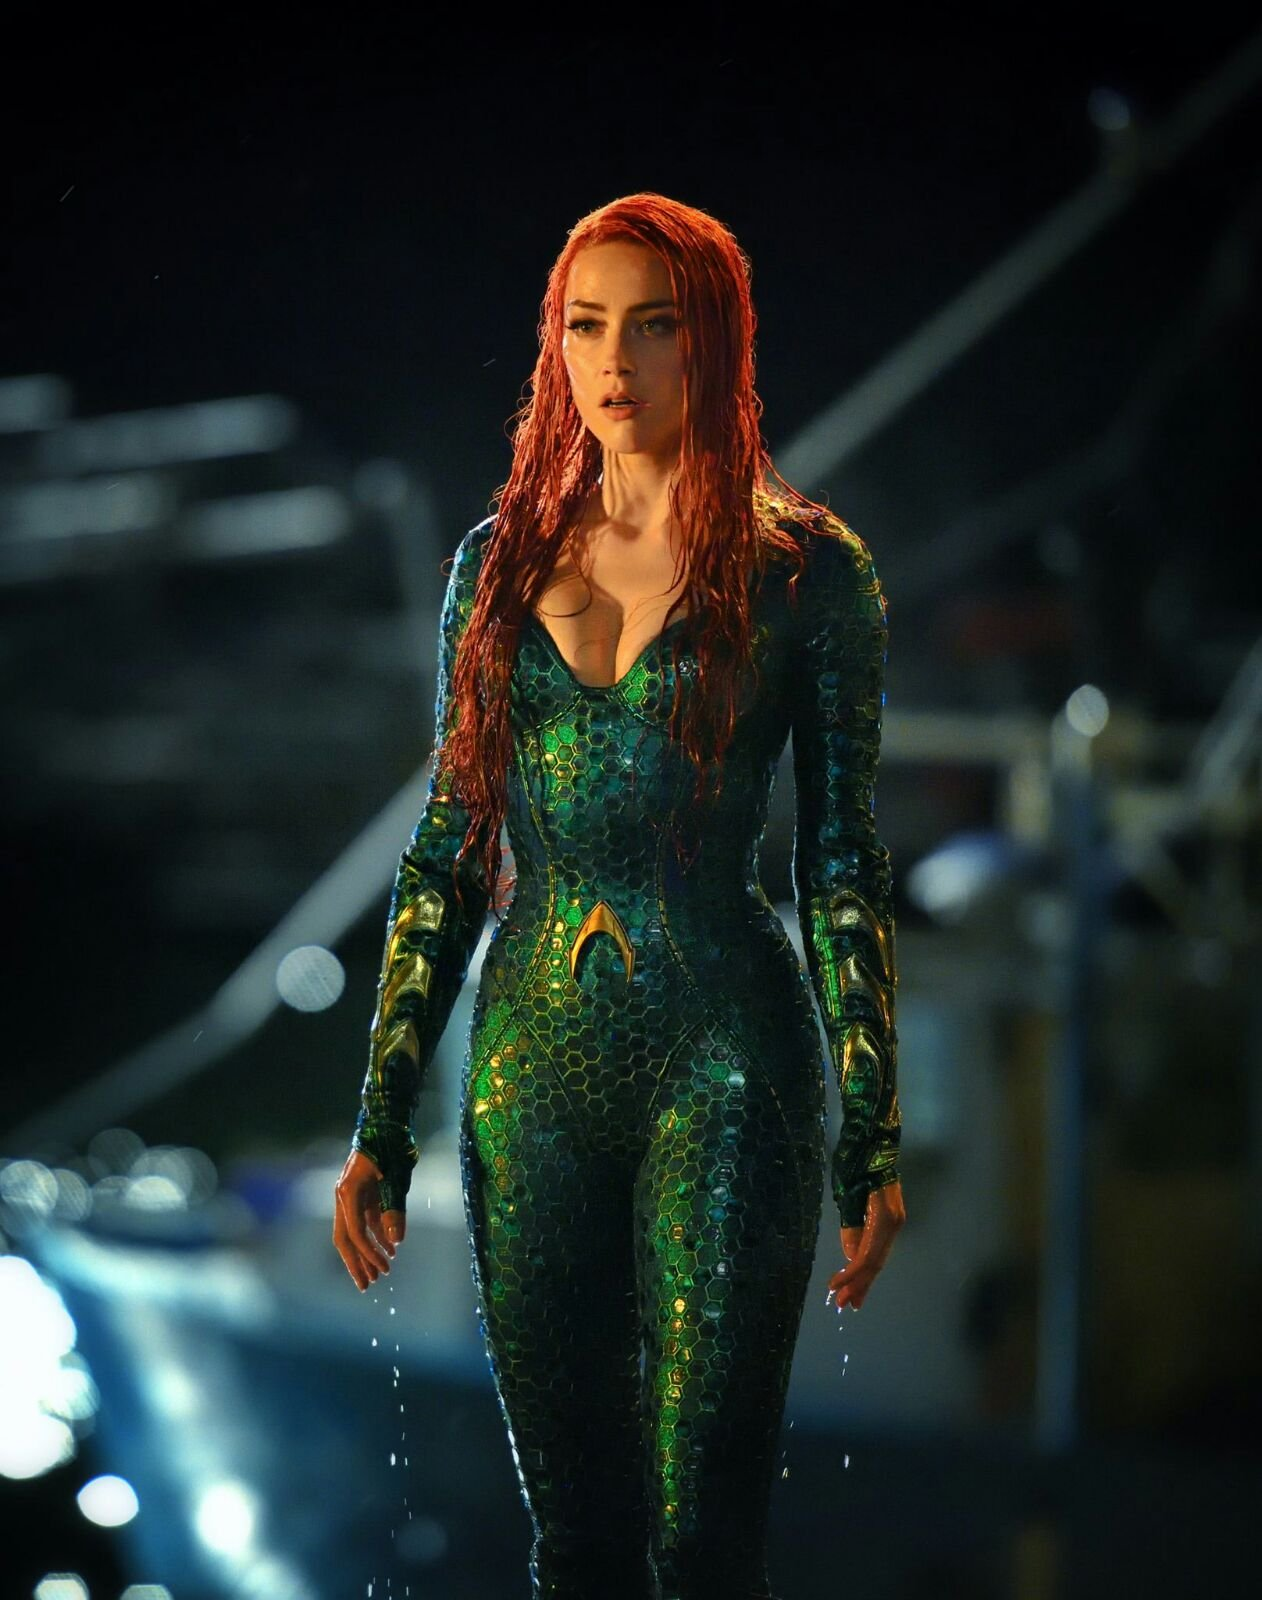 Mera%20-%20Aquaman%20JamesWan.jpeg